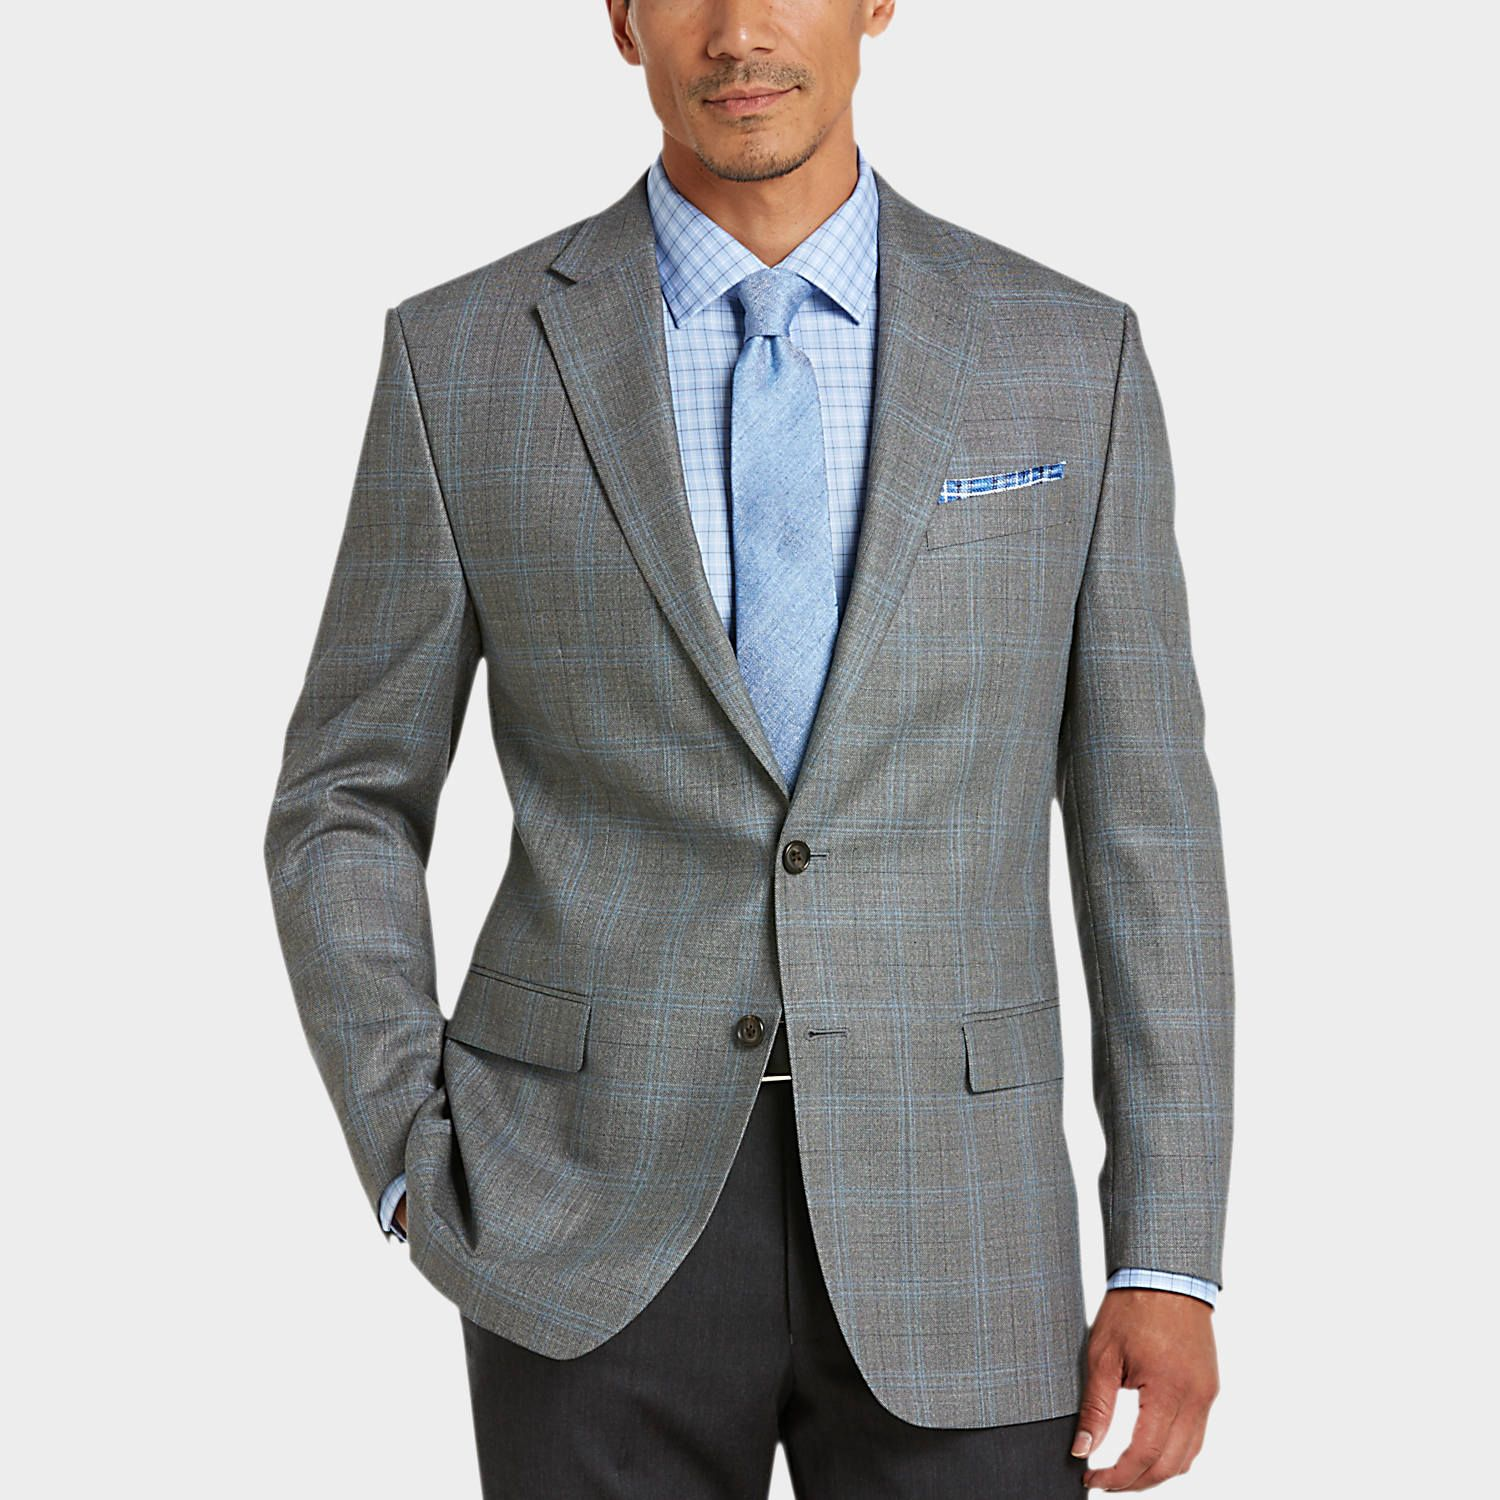 Buy a Lauren by Ralph Lauren Gray Plaid Classic Fit Sport Coat and ...